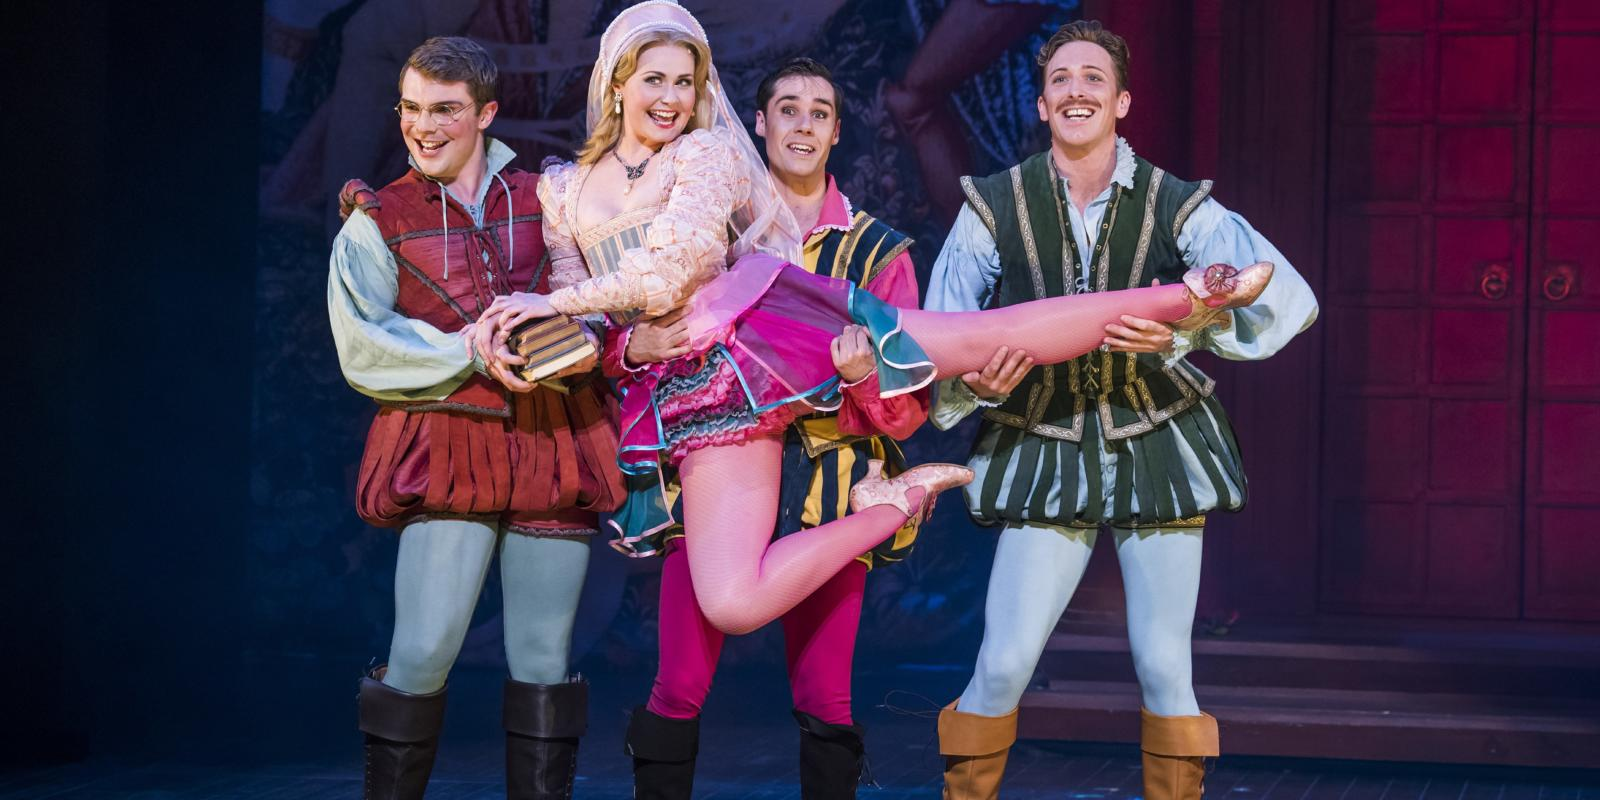 Jack Wilcox as Hortensio Zoe Rainey as Bianca Piers Bate as Gremio and Alan Burkitt as Lucentio